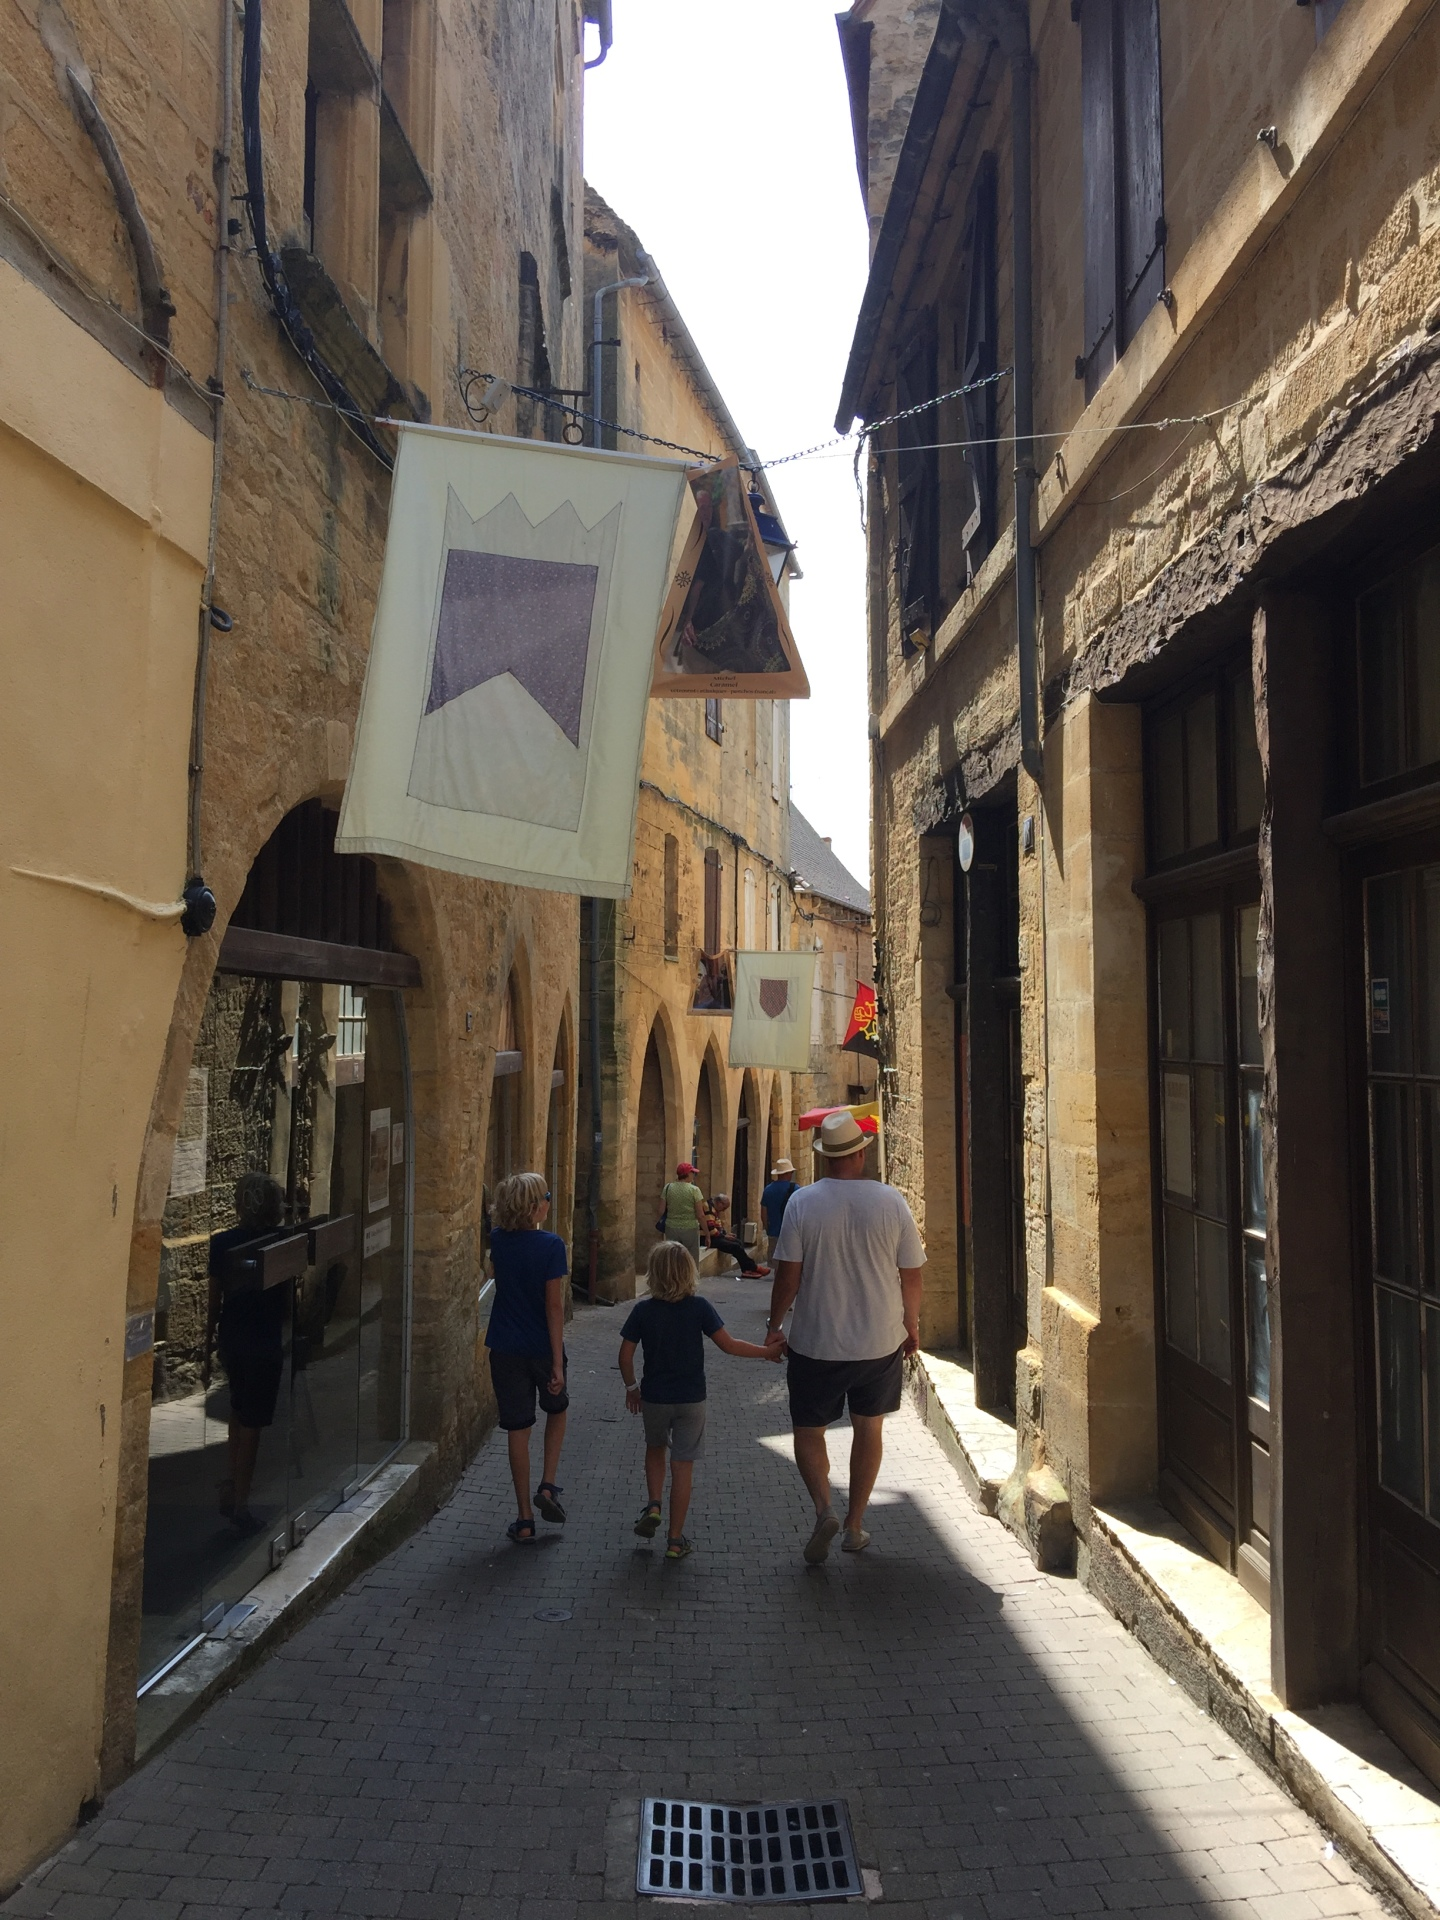 Strolling through the medieval streets of Gourdon